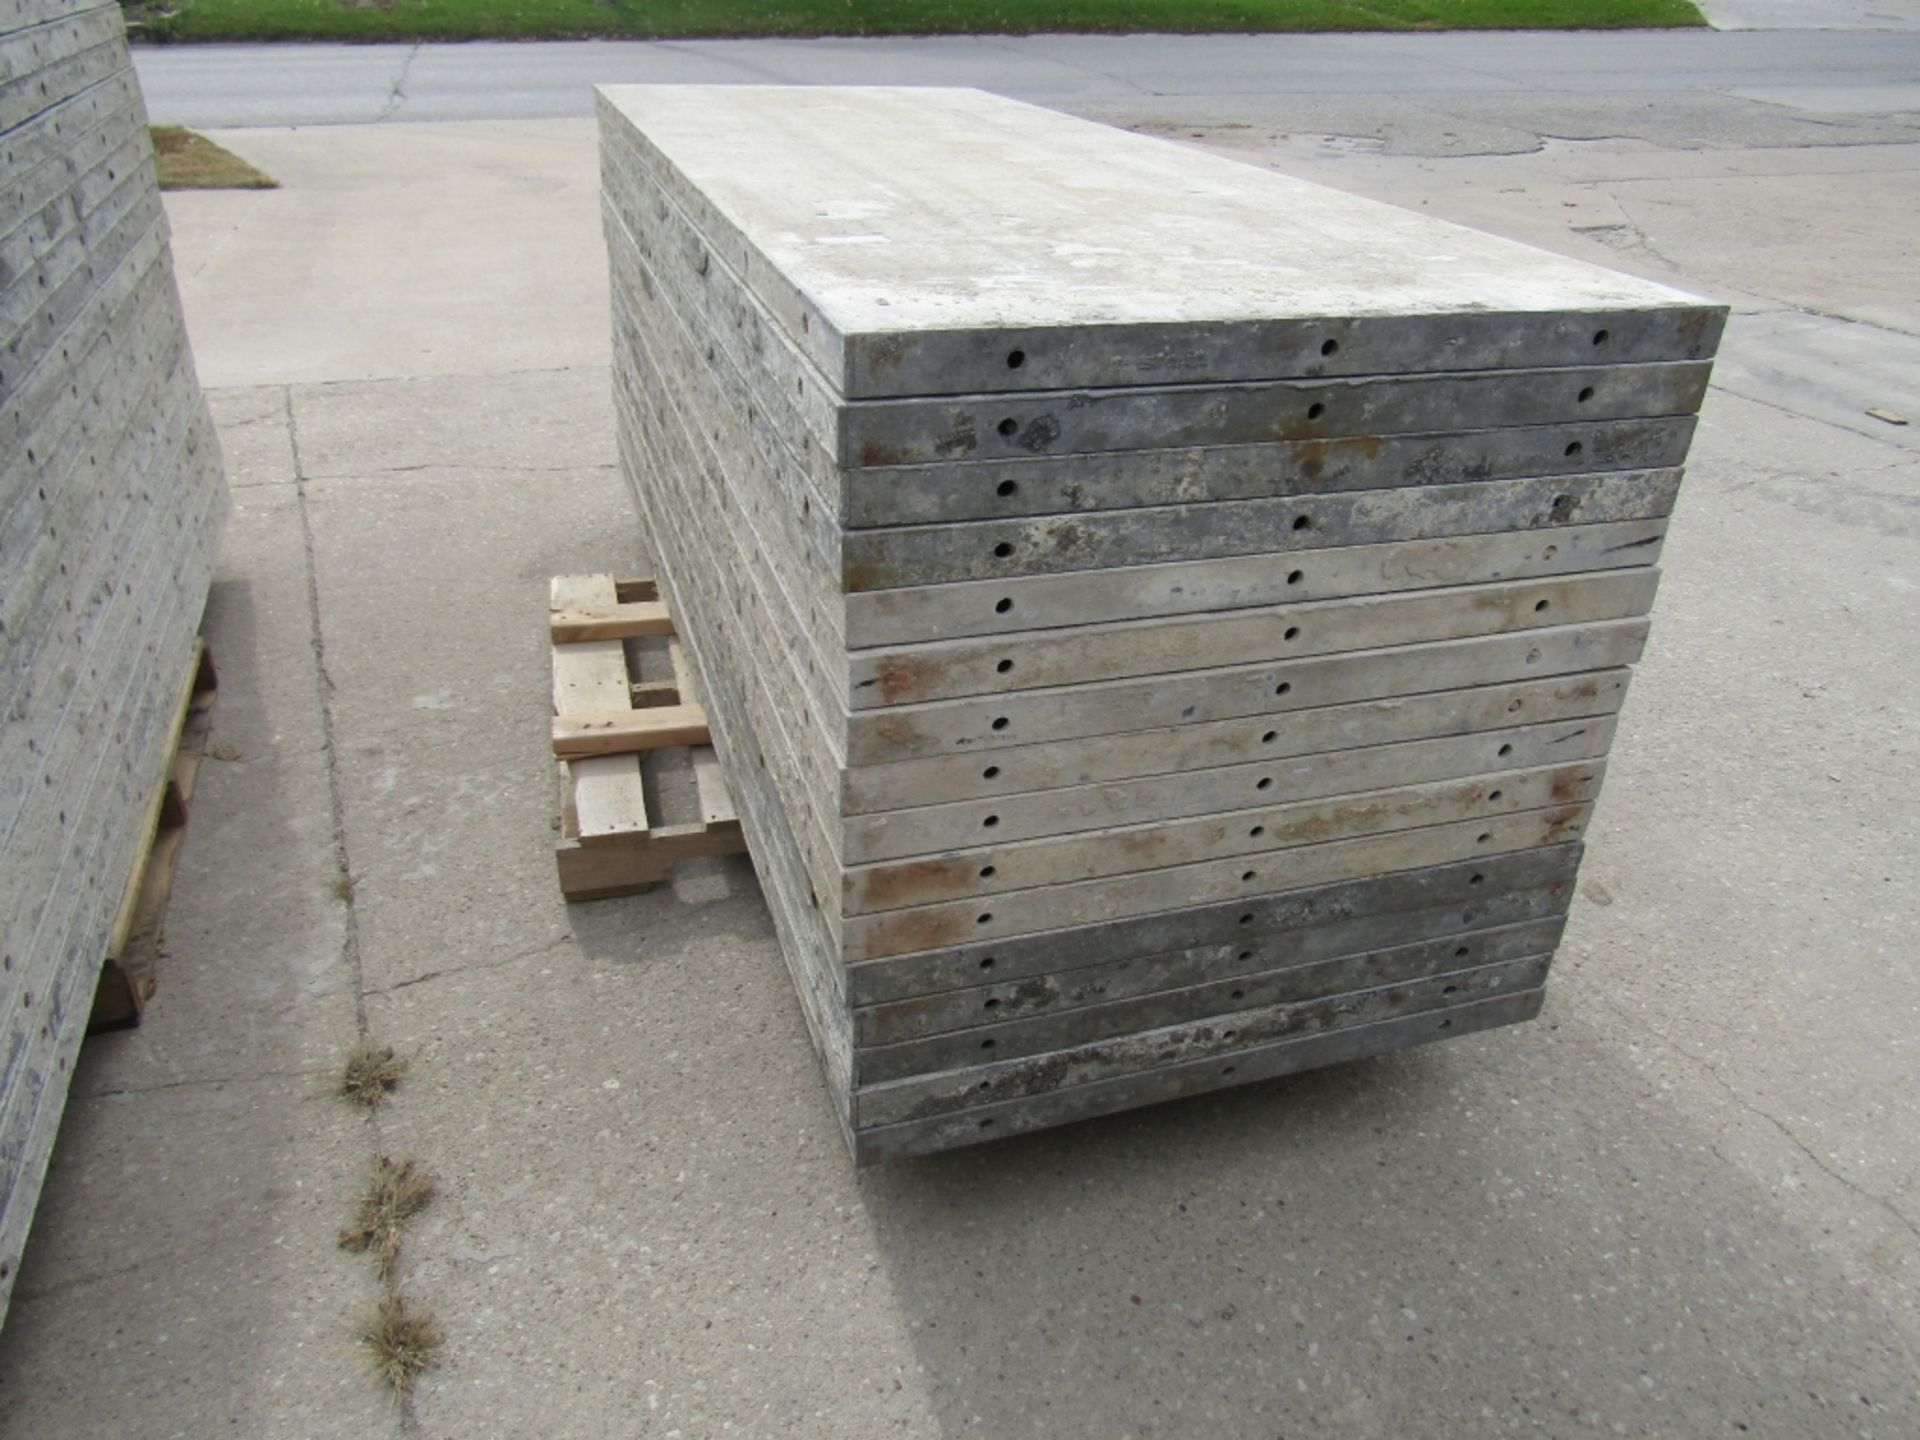 """(16) 36"""" x 8' Durand Concrete Forms, Smooth 6-12 Hole Pattern, Attached Hardware, Located in Mt. - Image 2 of 4"""